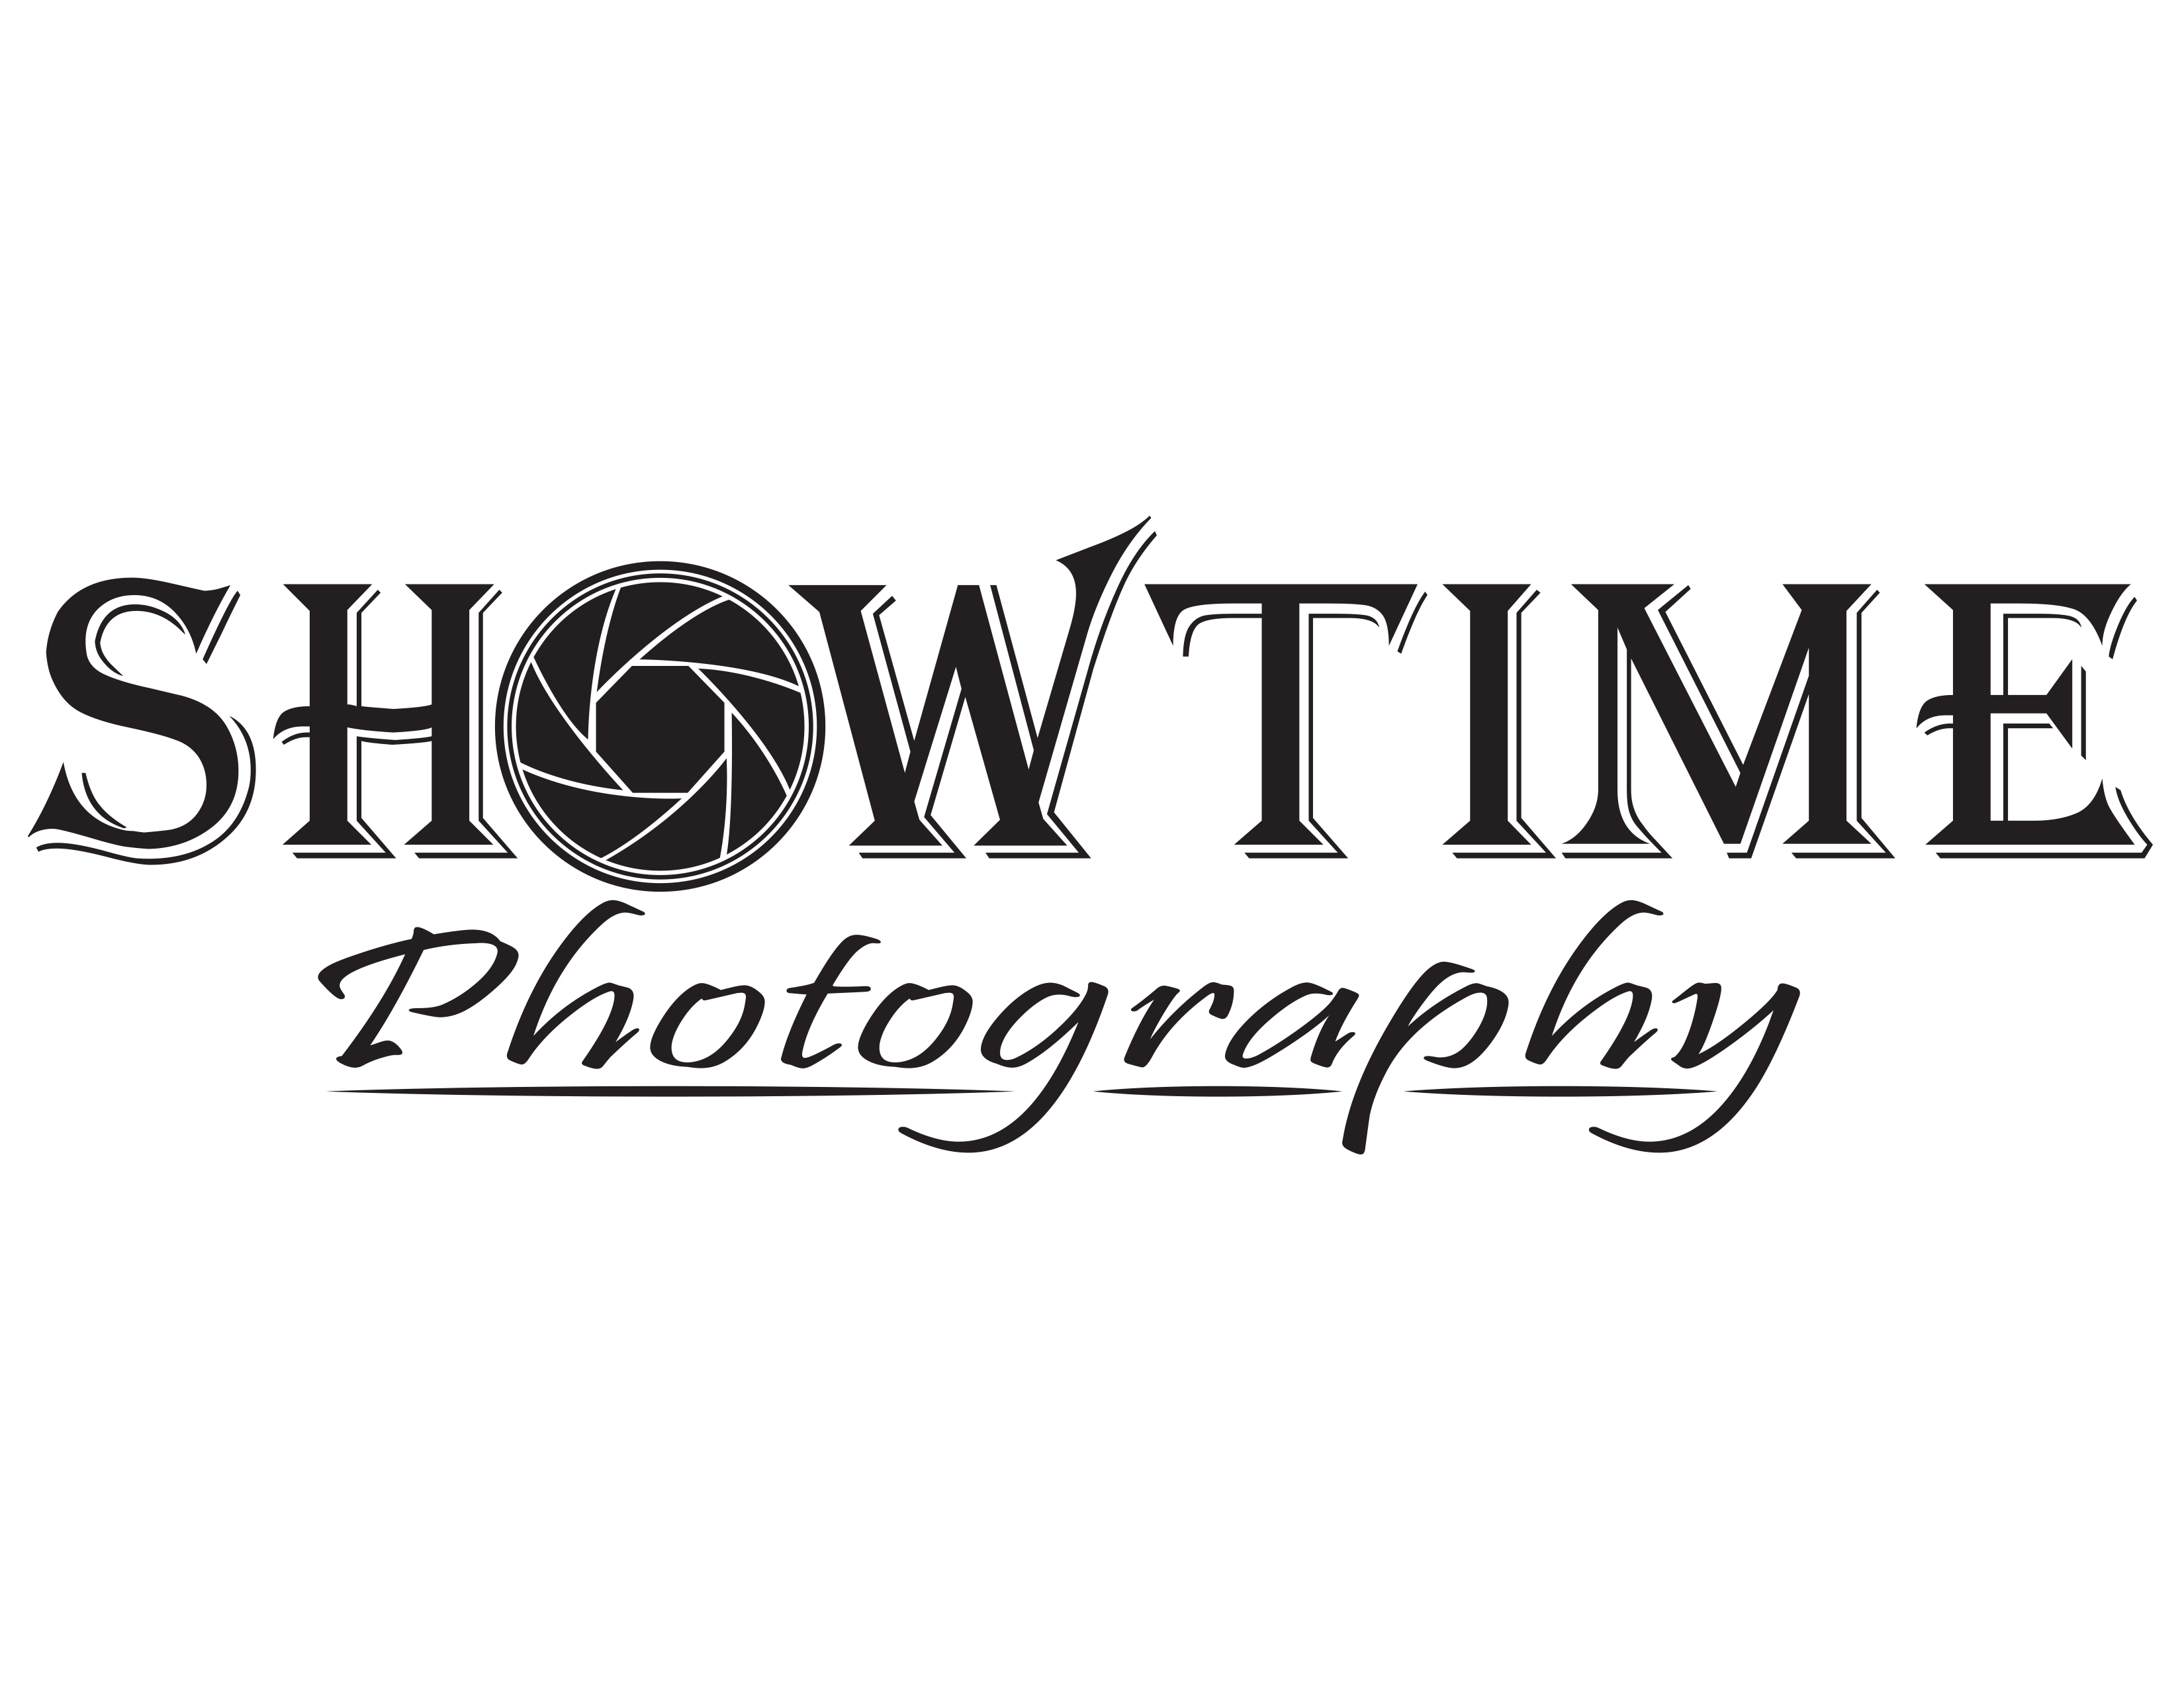 Showtime Photography Studio and Art Gallery